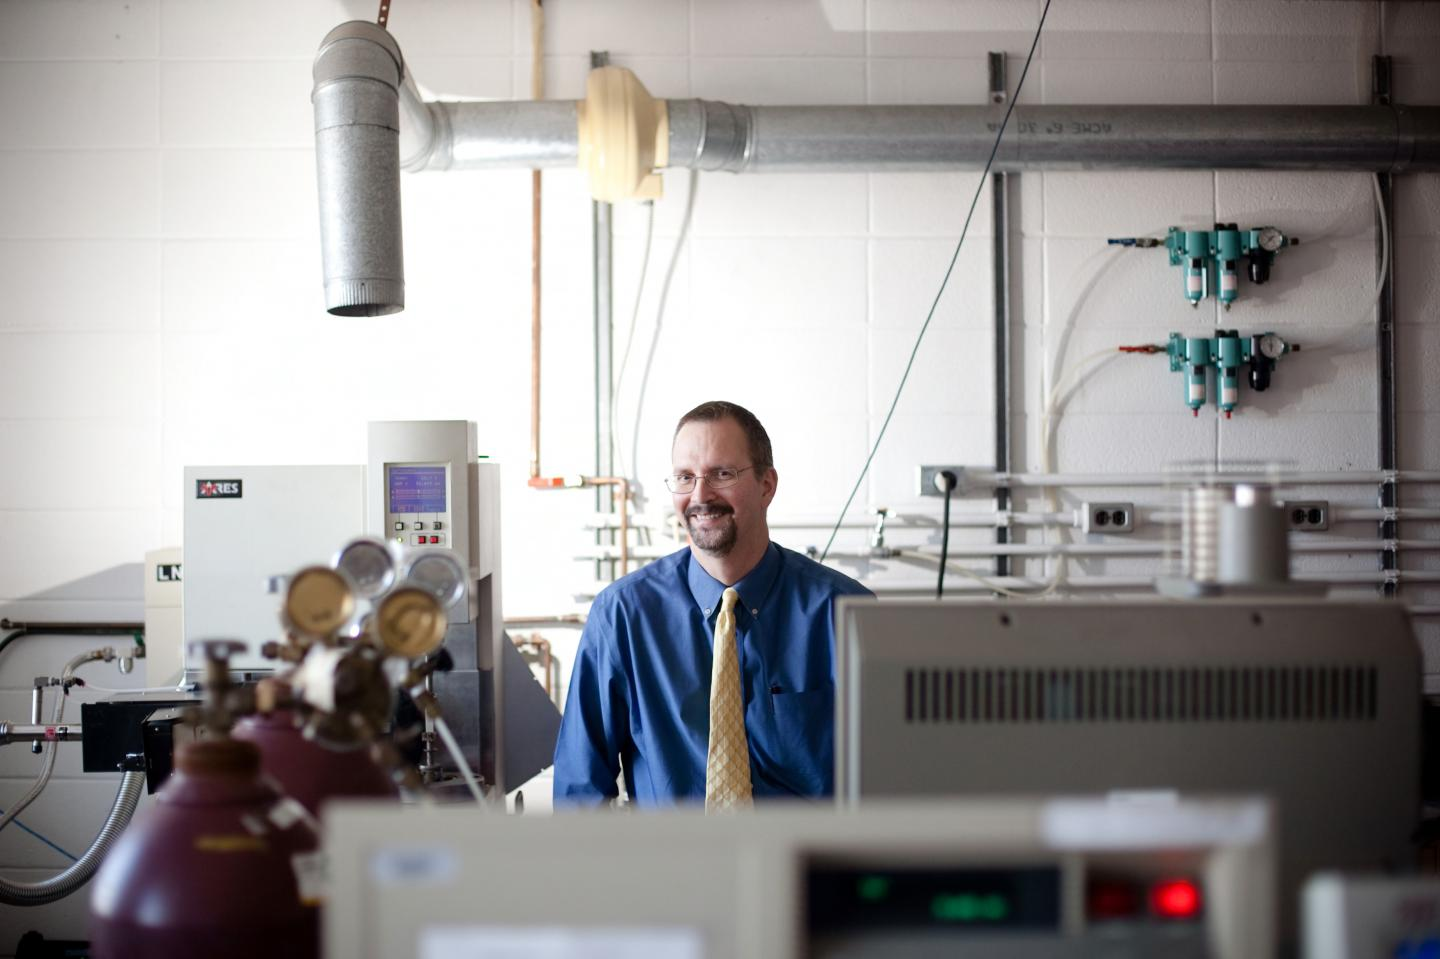 Dr. Ray Pearson's research focuses on the fracture of polymeric materials